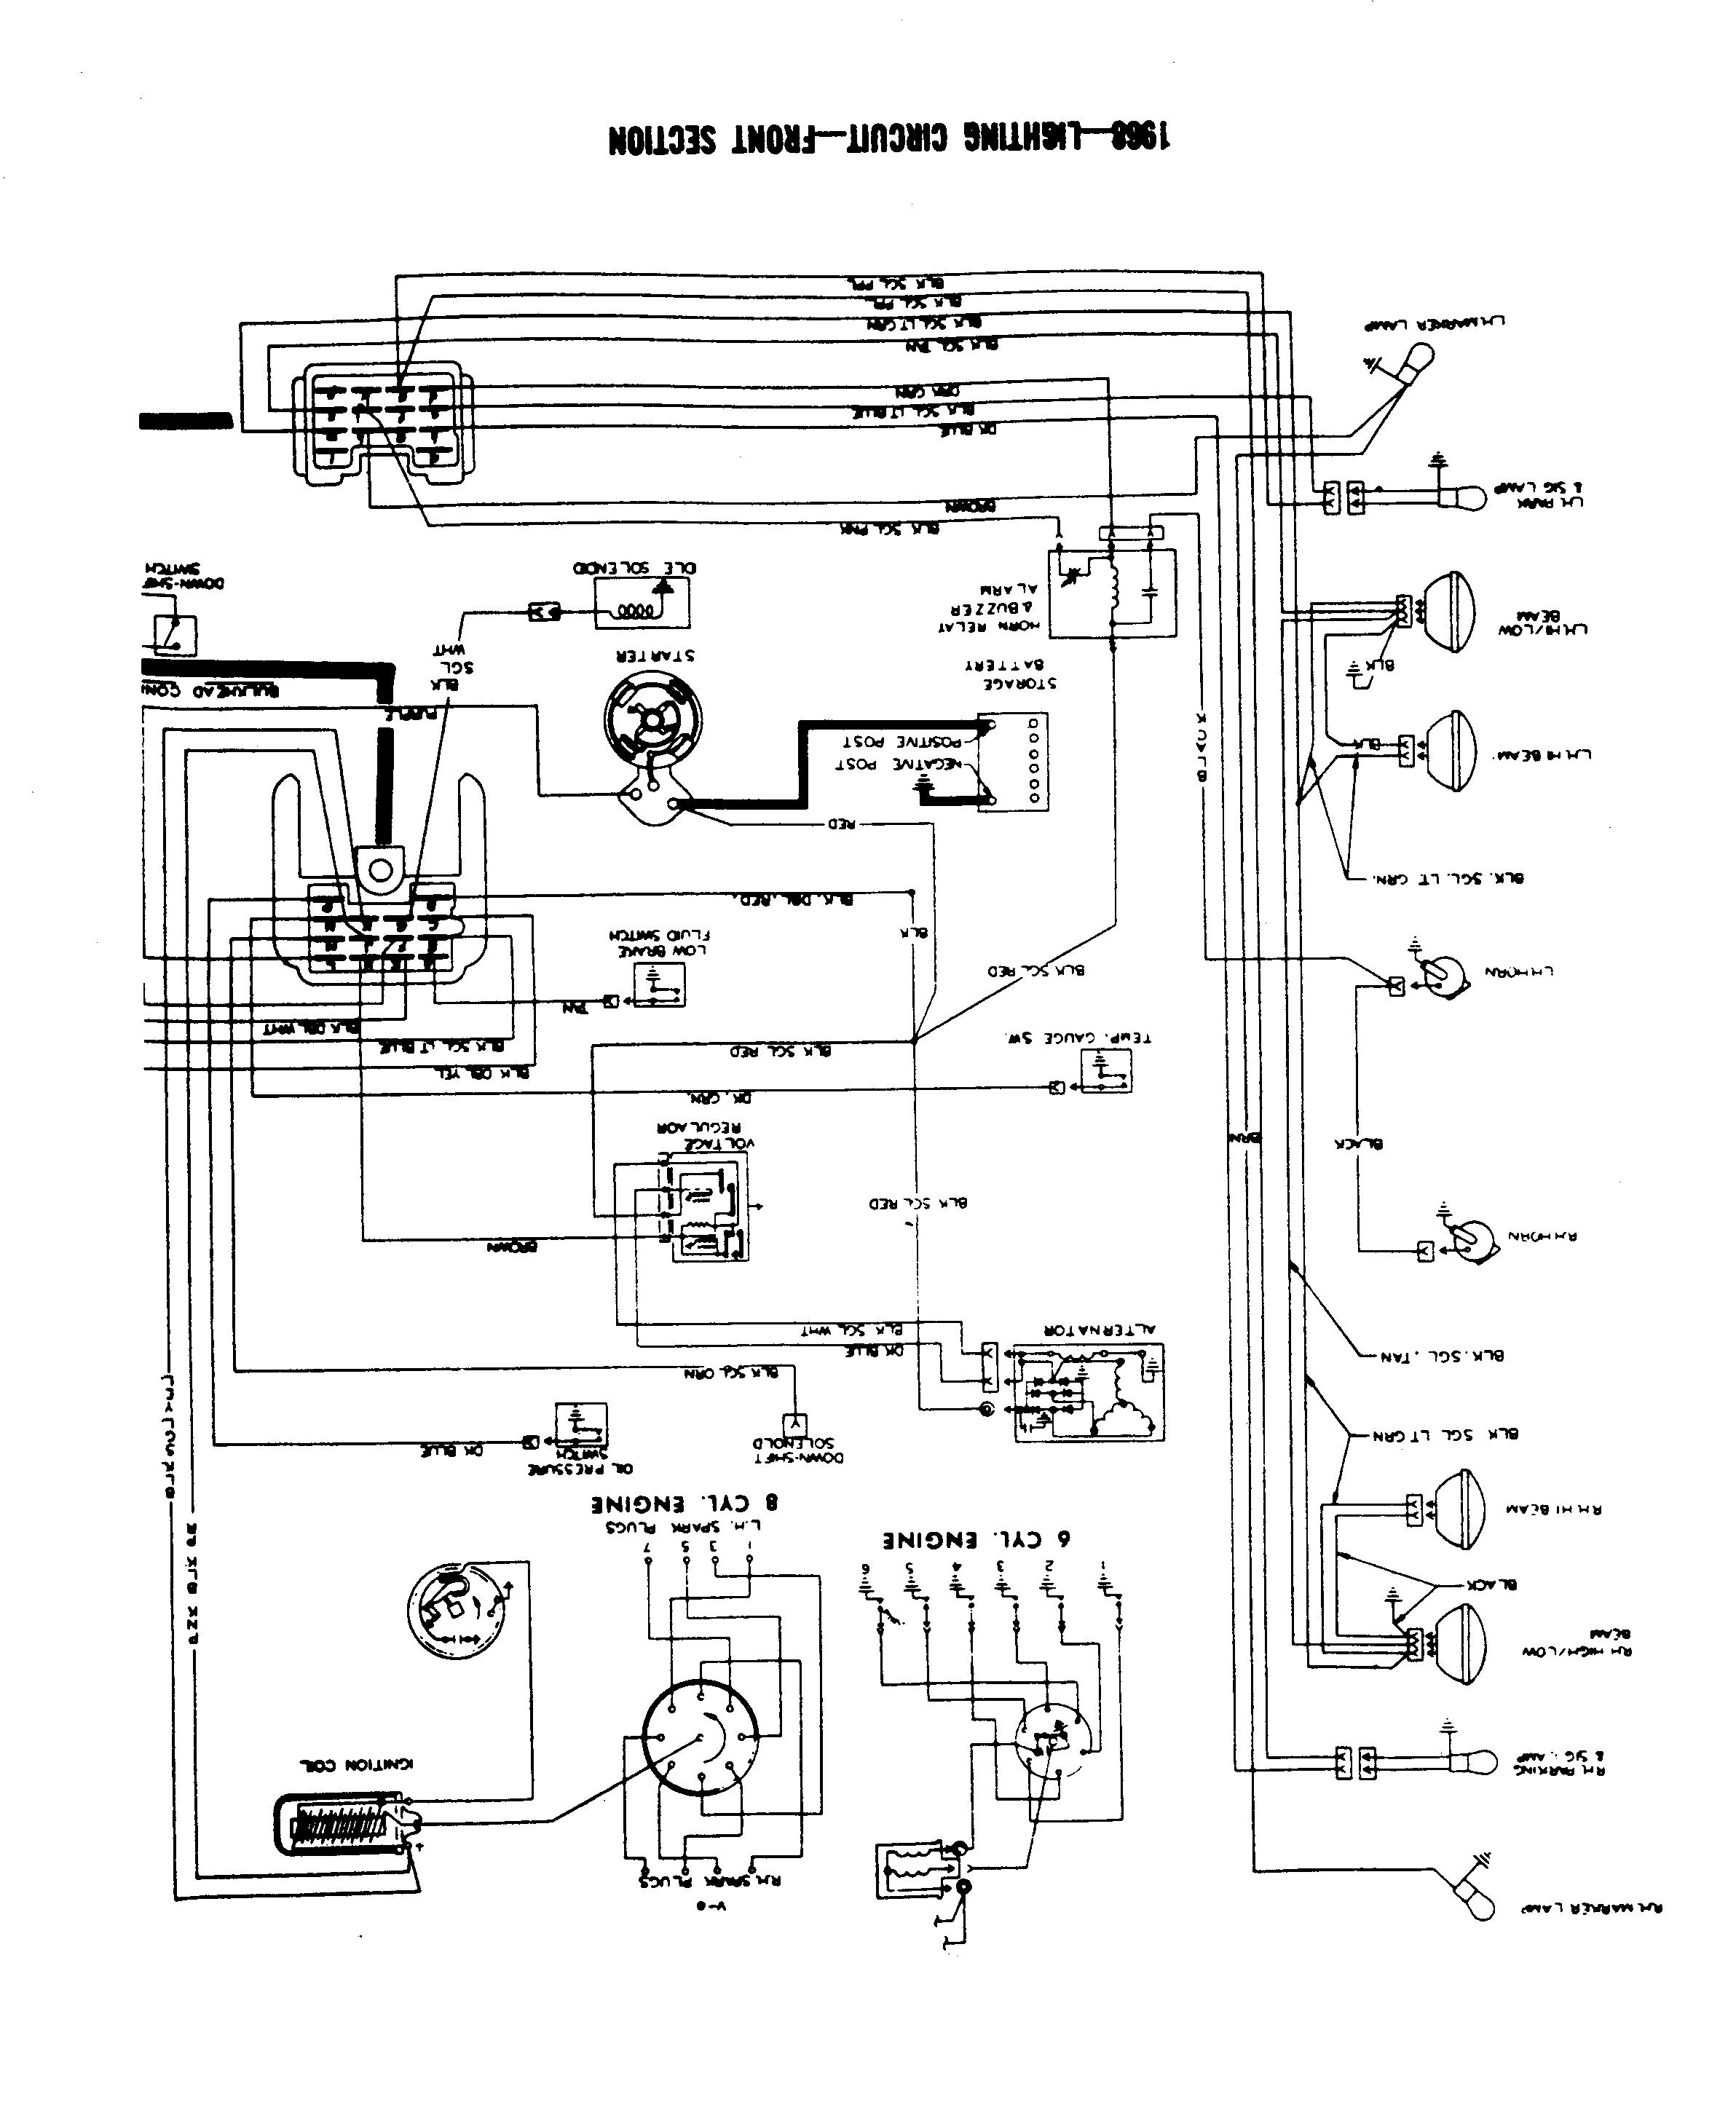 Wiring Diagram For 1966 Pontiac Gto